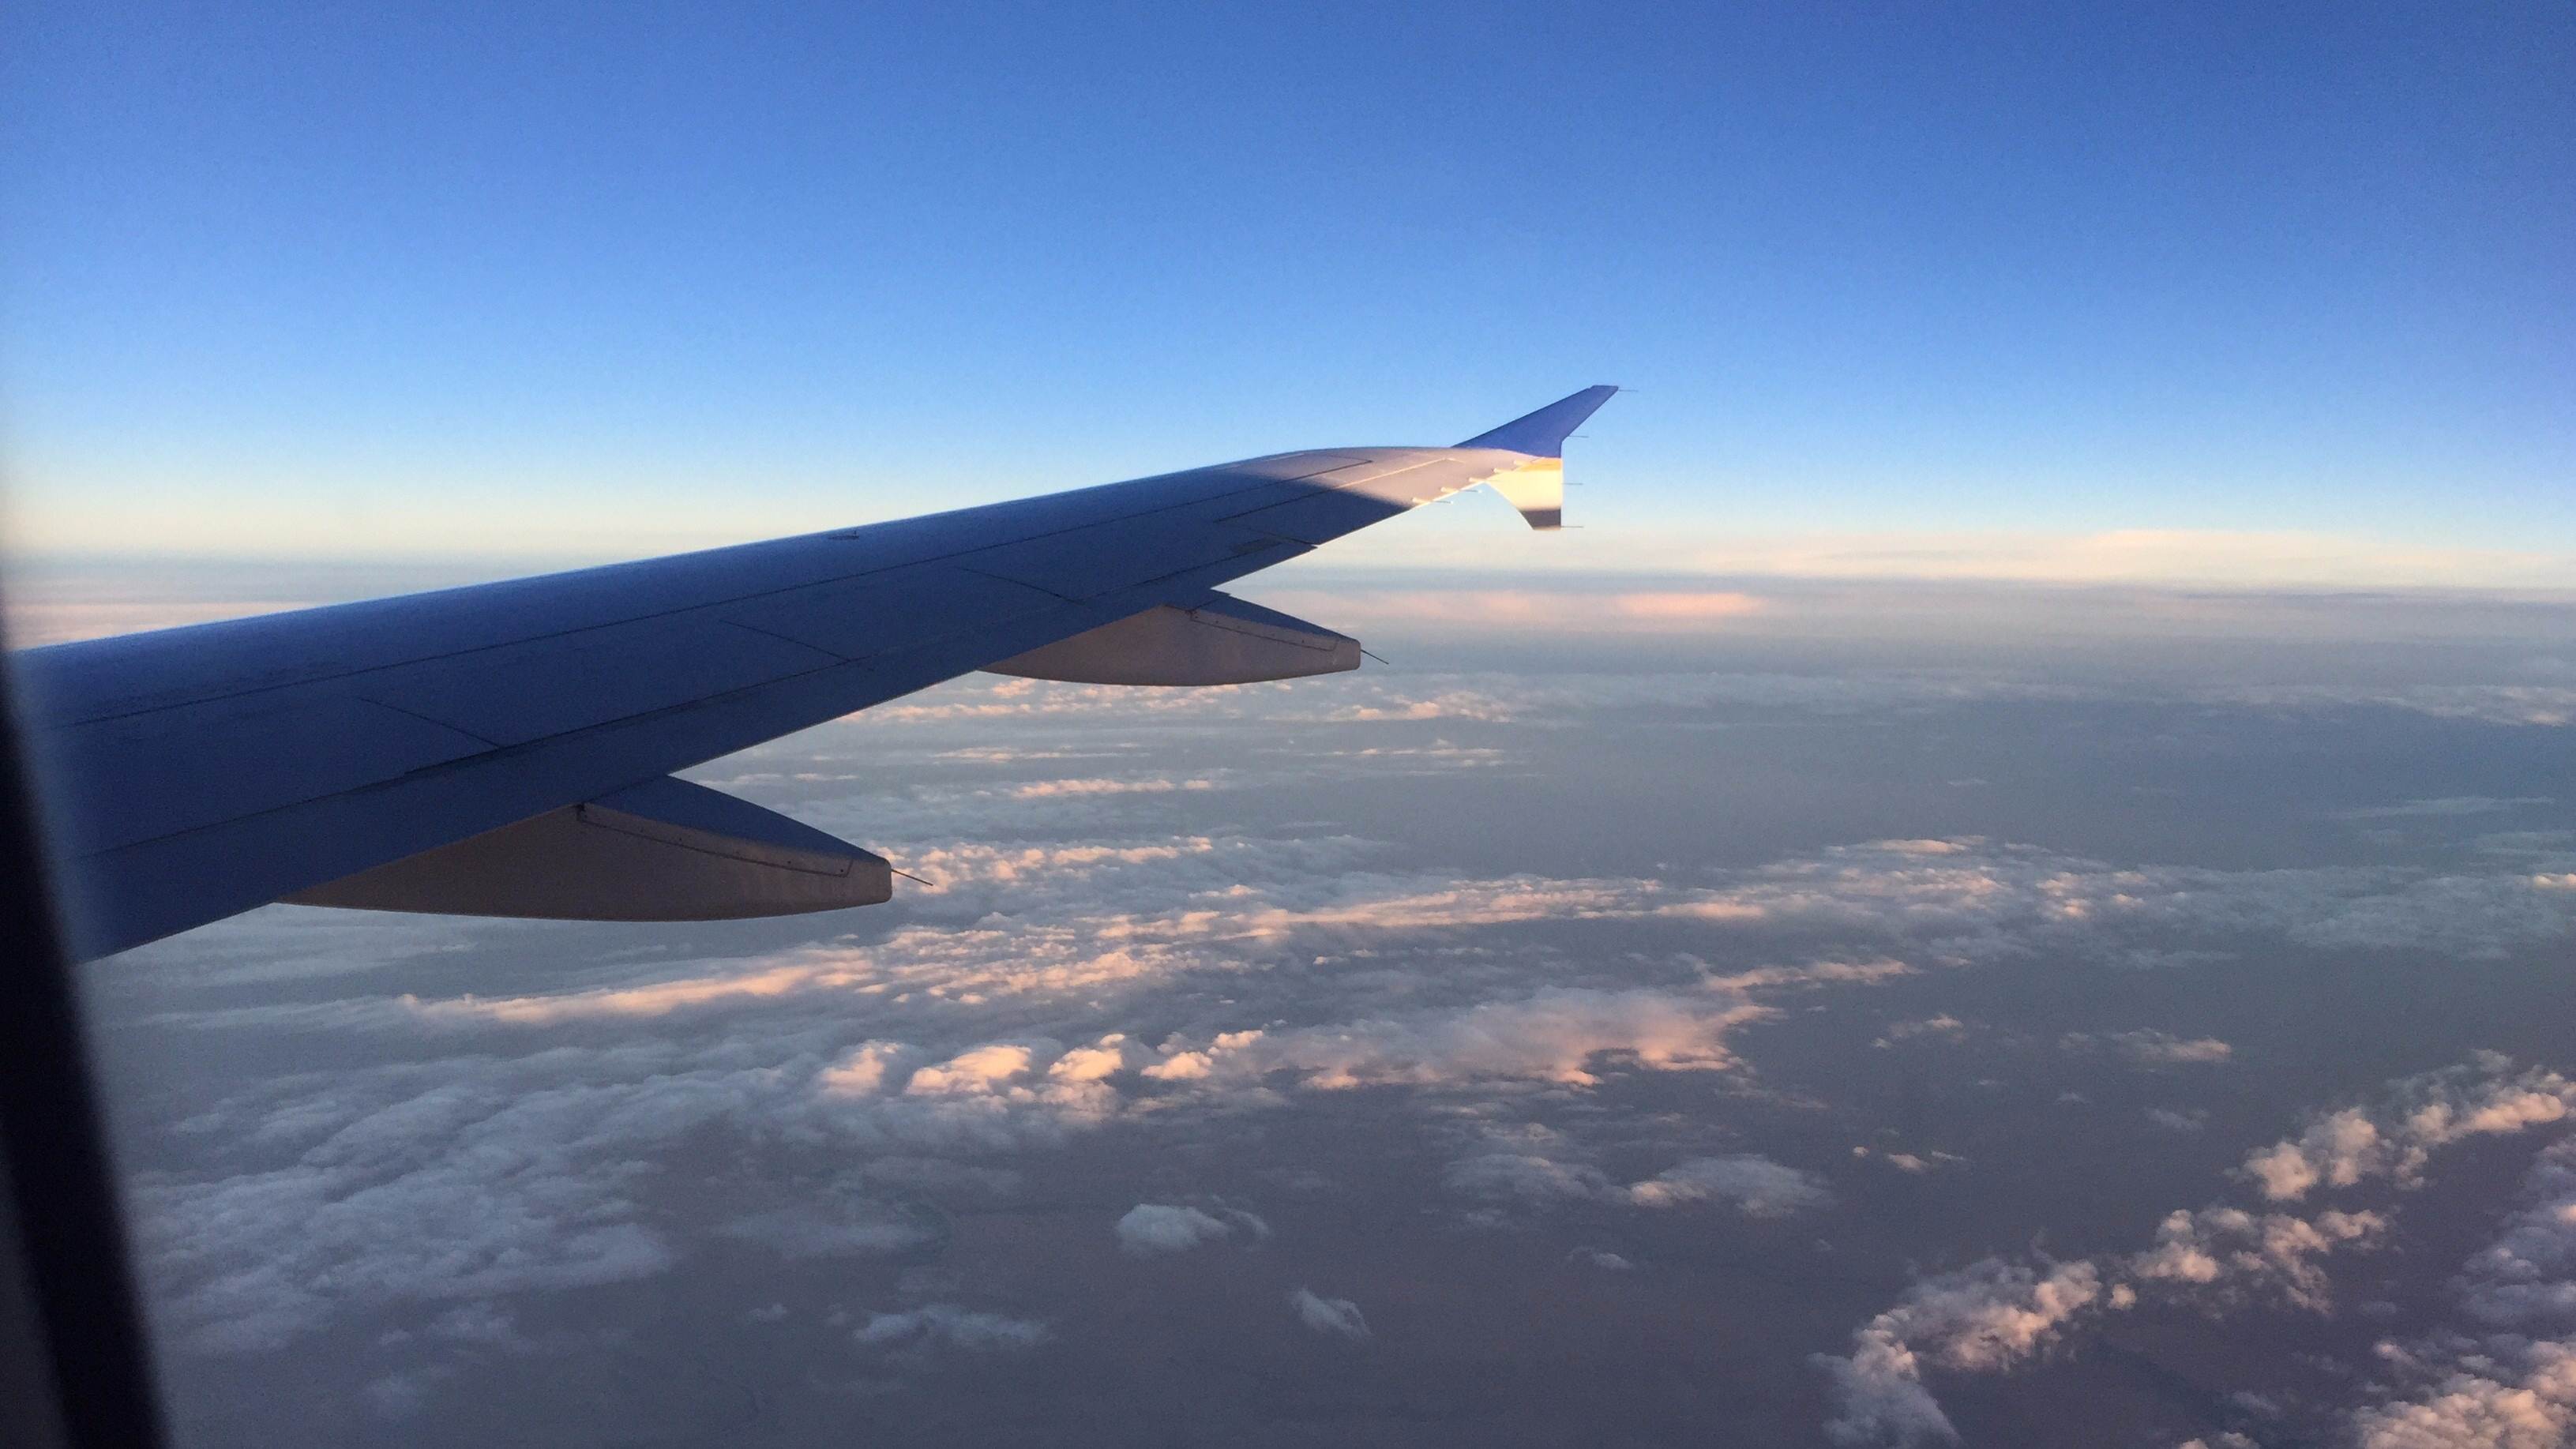 Review: United Airlines A319-100 Economy Santa Ana to Denver